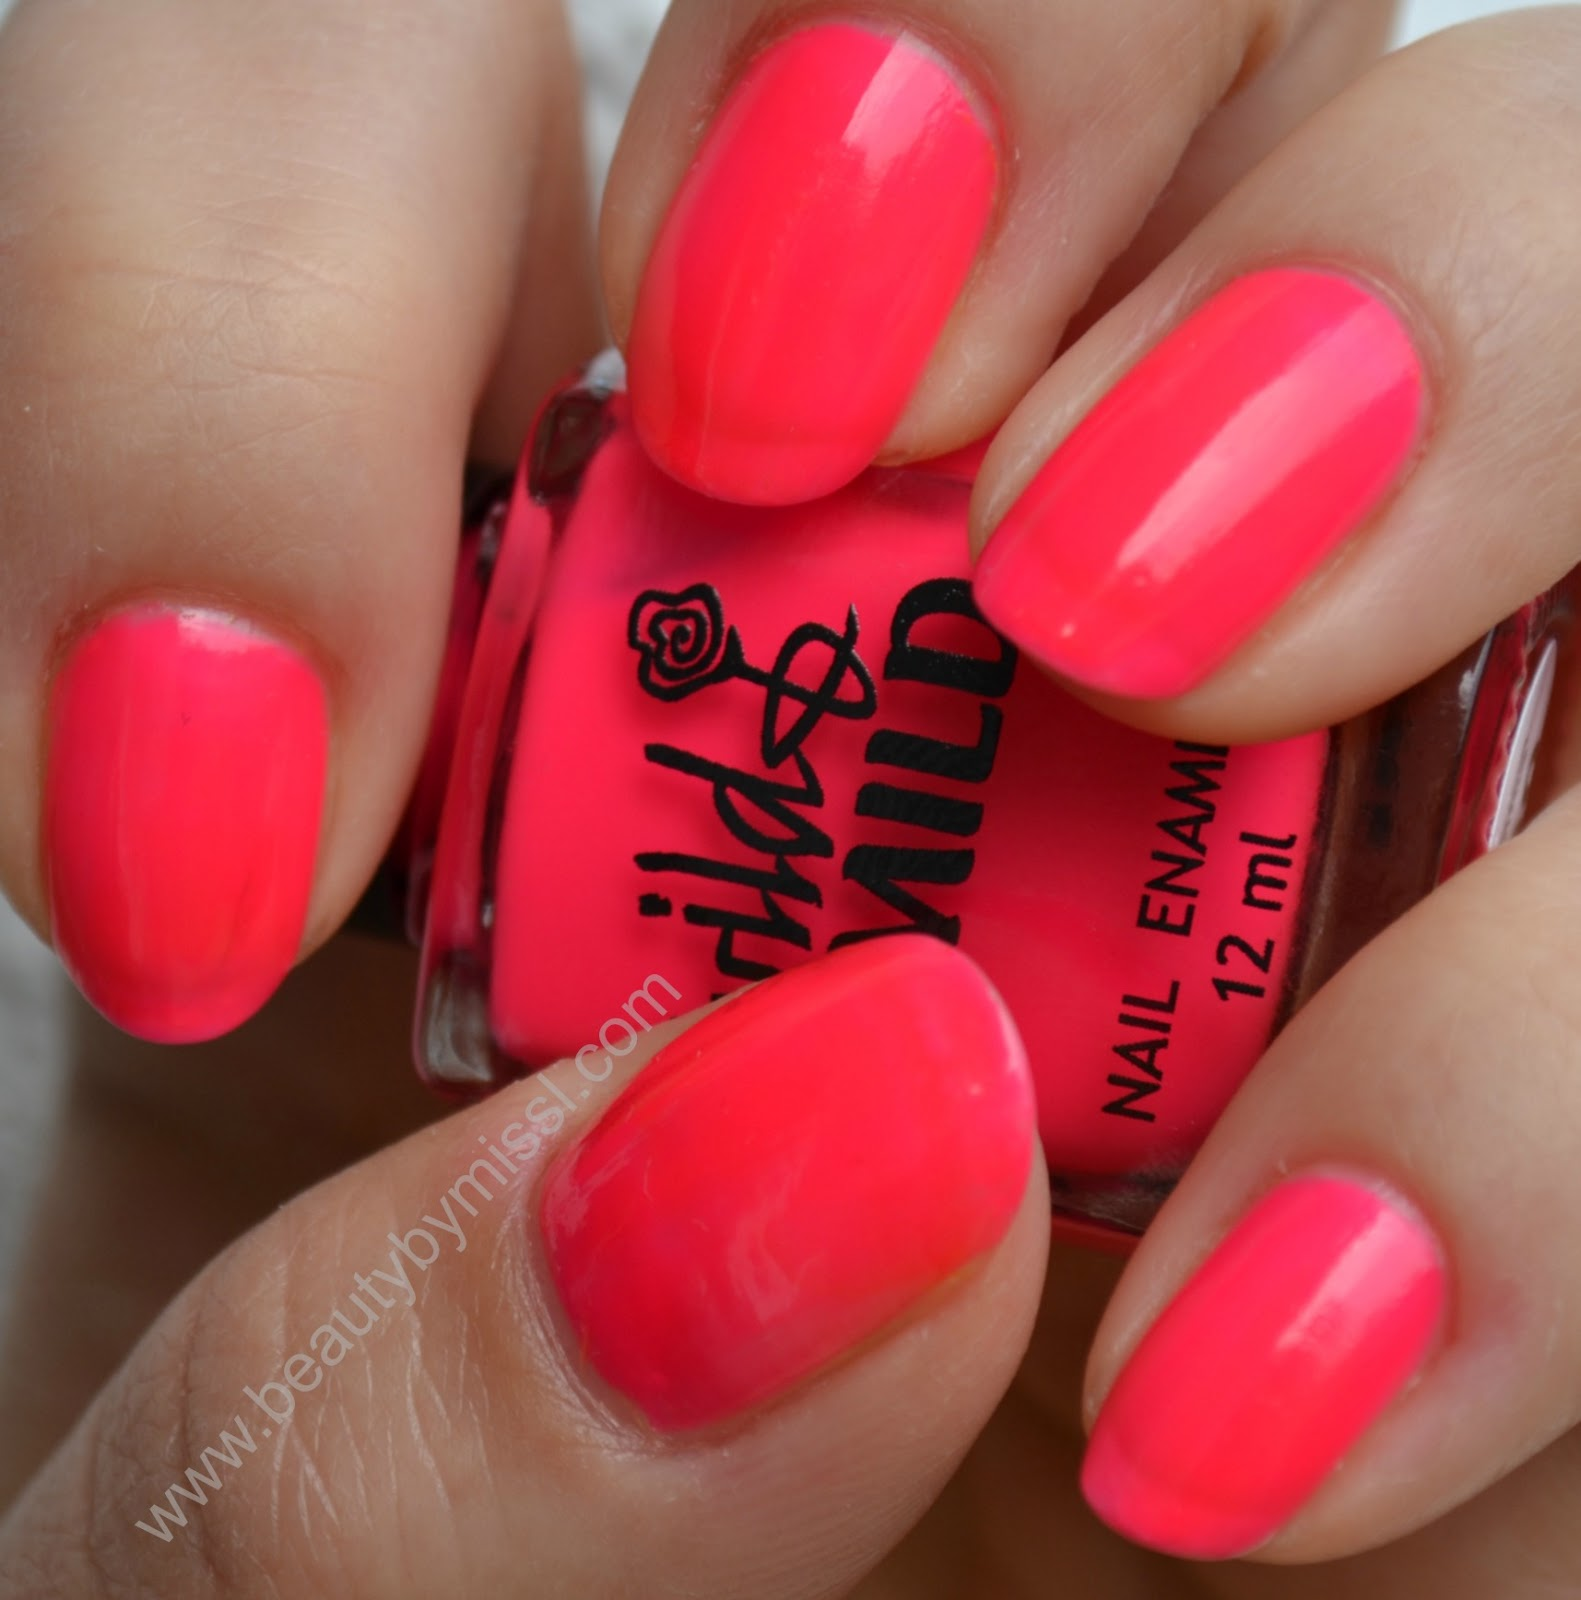 NOTD: Wild&Mild 006 Pink Mania - Beauty by Miss L